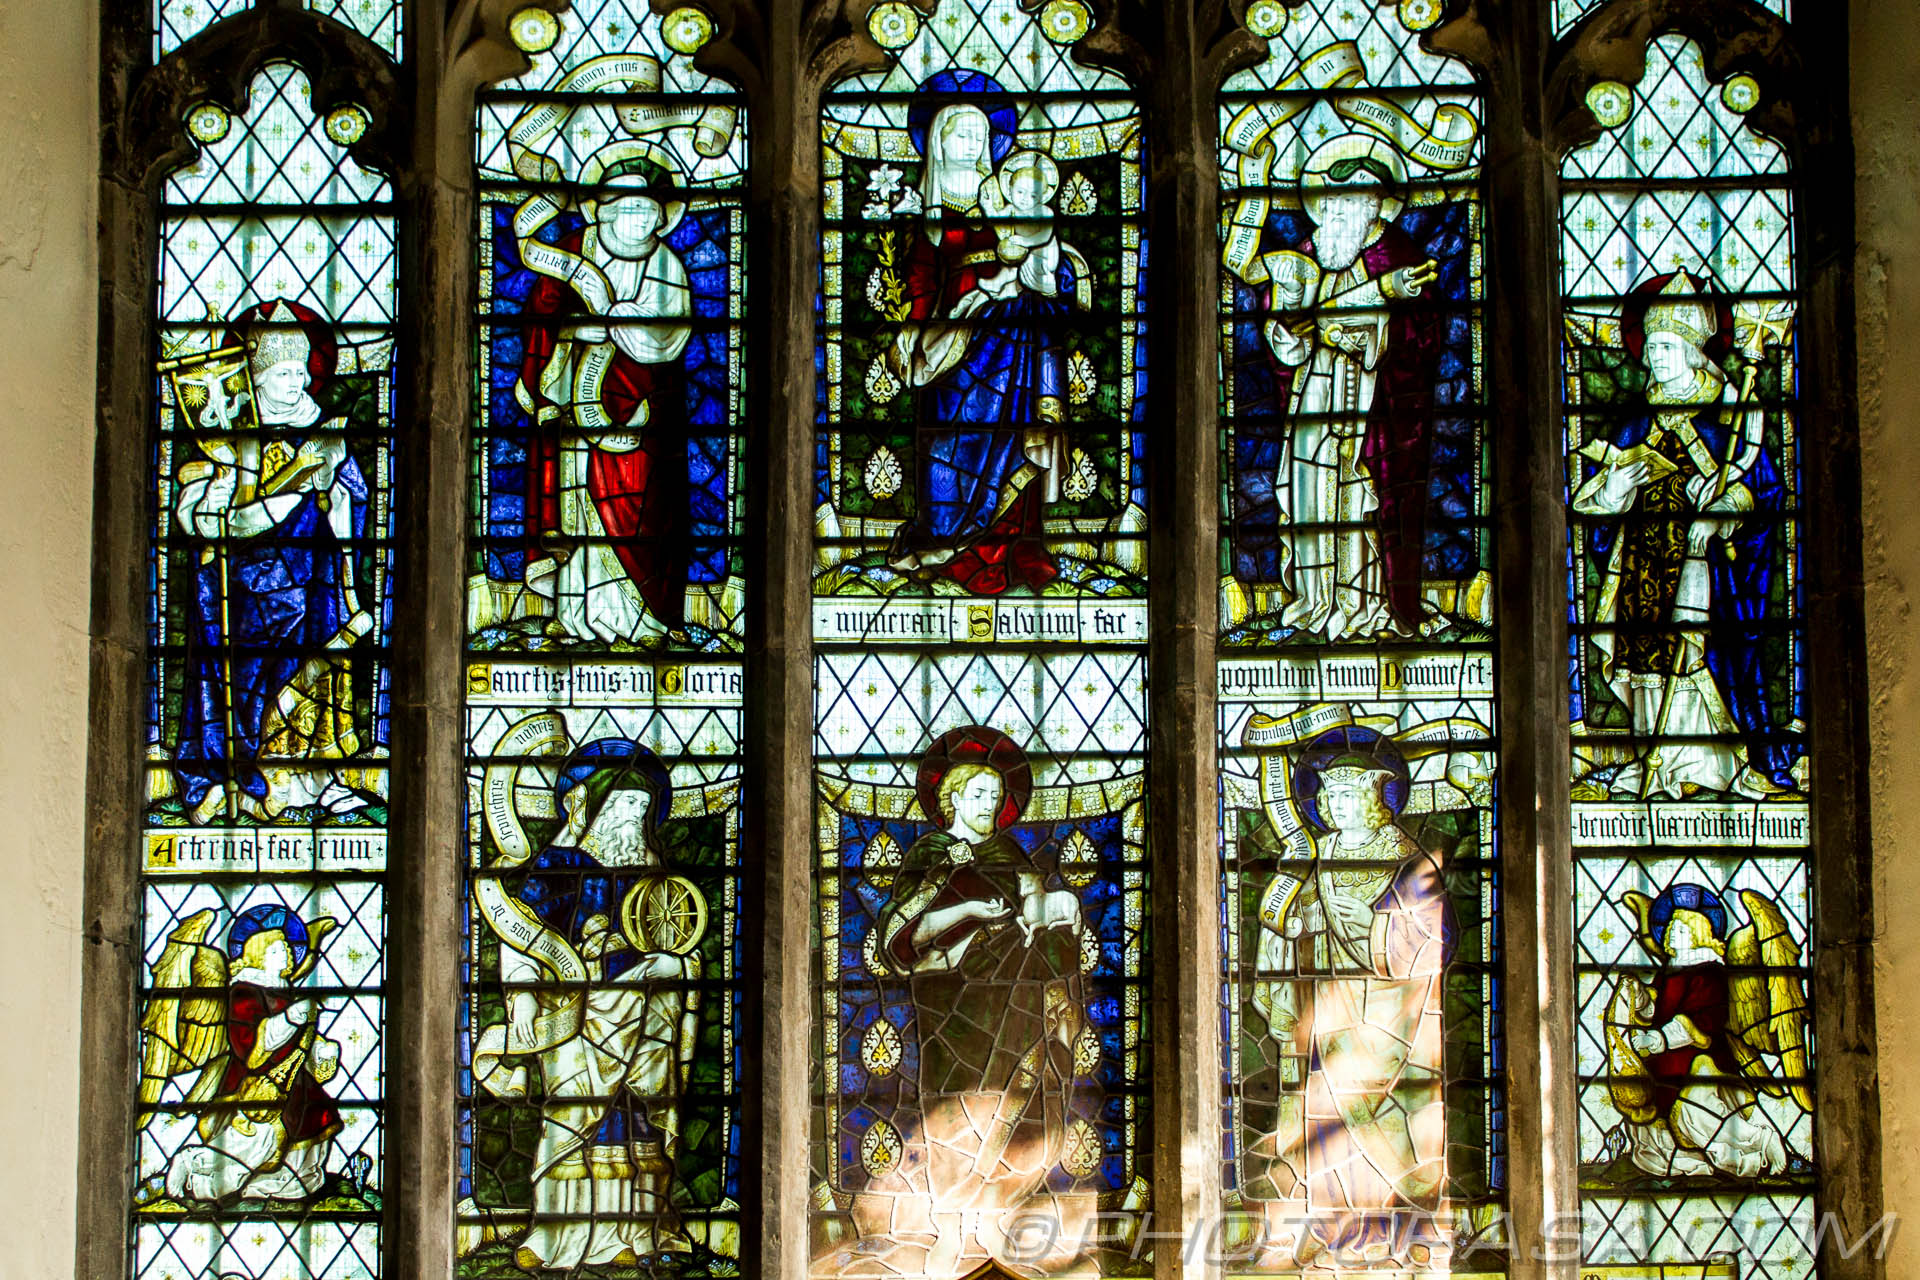 http://photorasa.com/parish-church-st-peter-st-paul-headcorn/lady-chapel-stained-glass-window-showing-mary-and-baby-jesus-and/